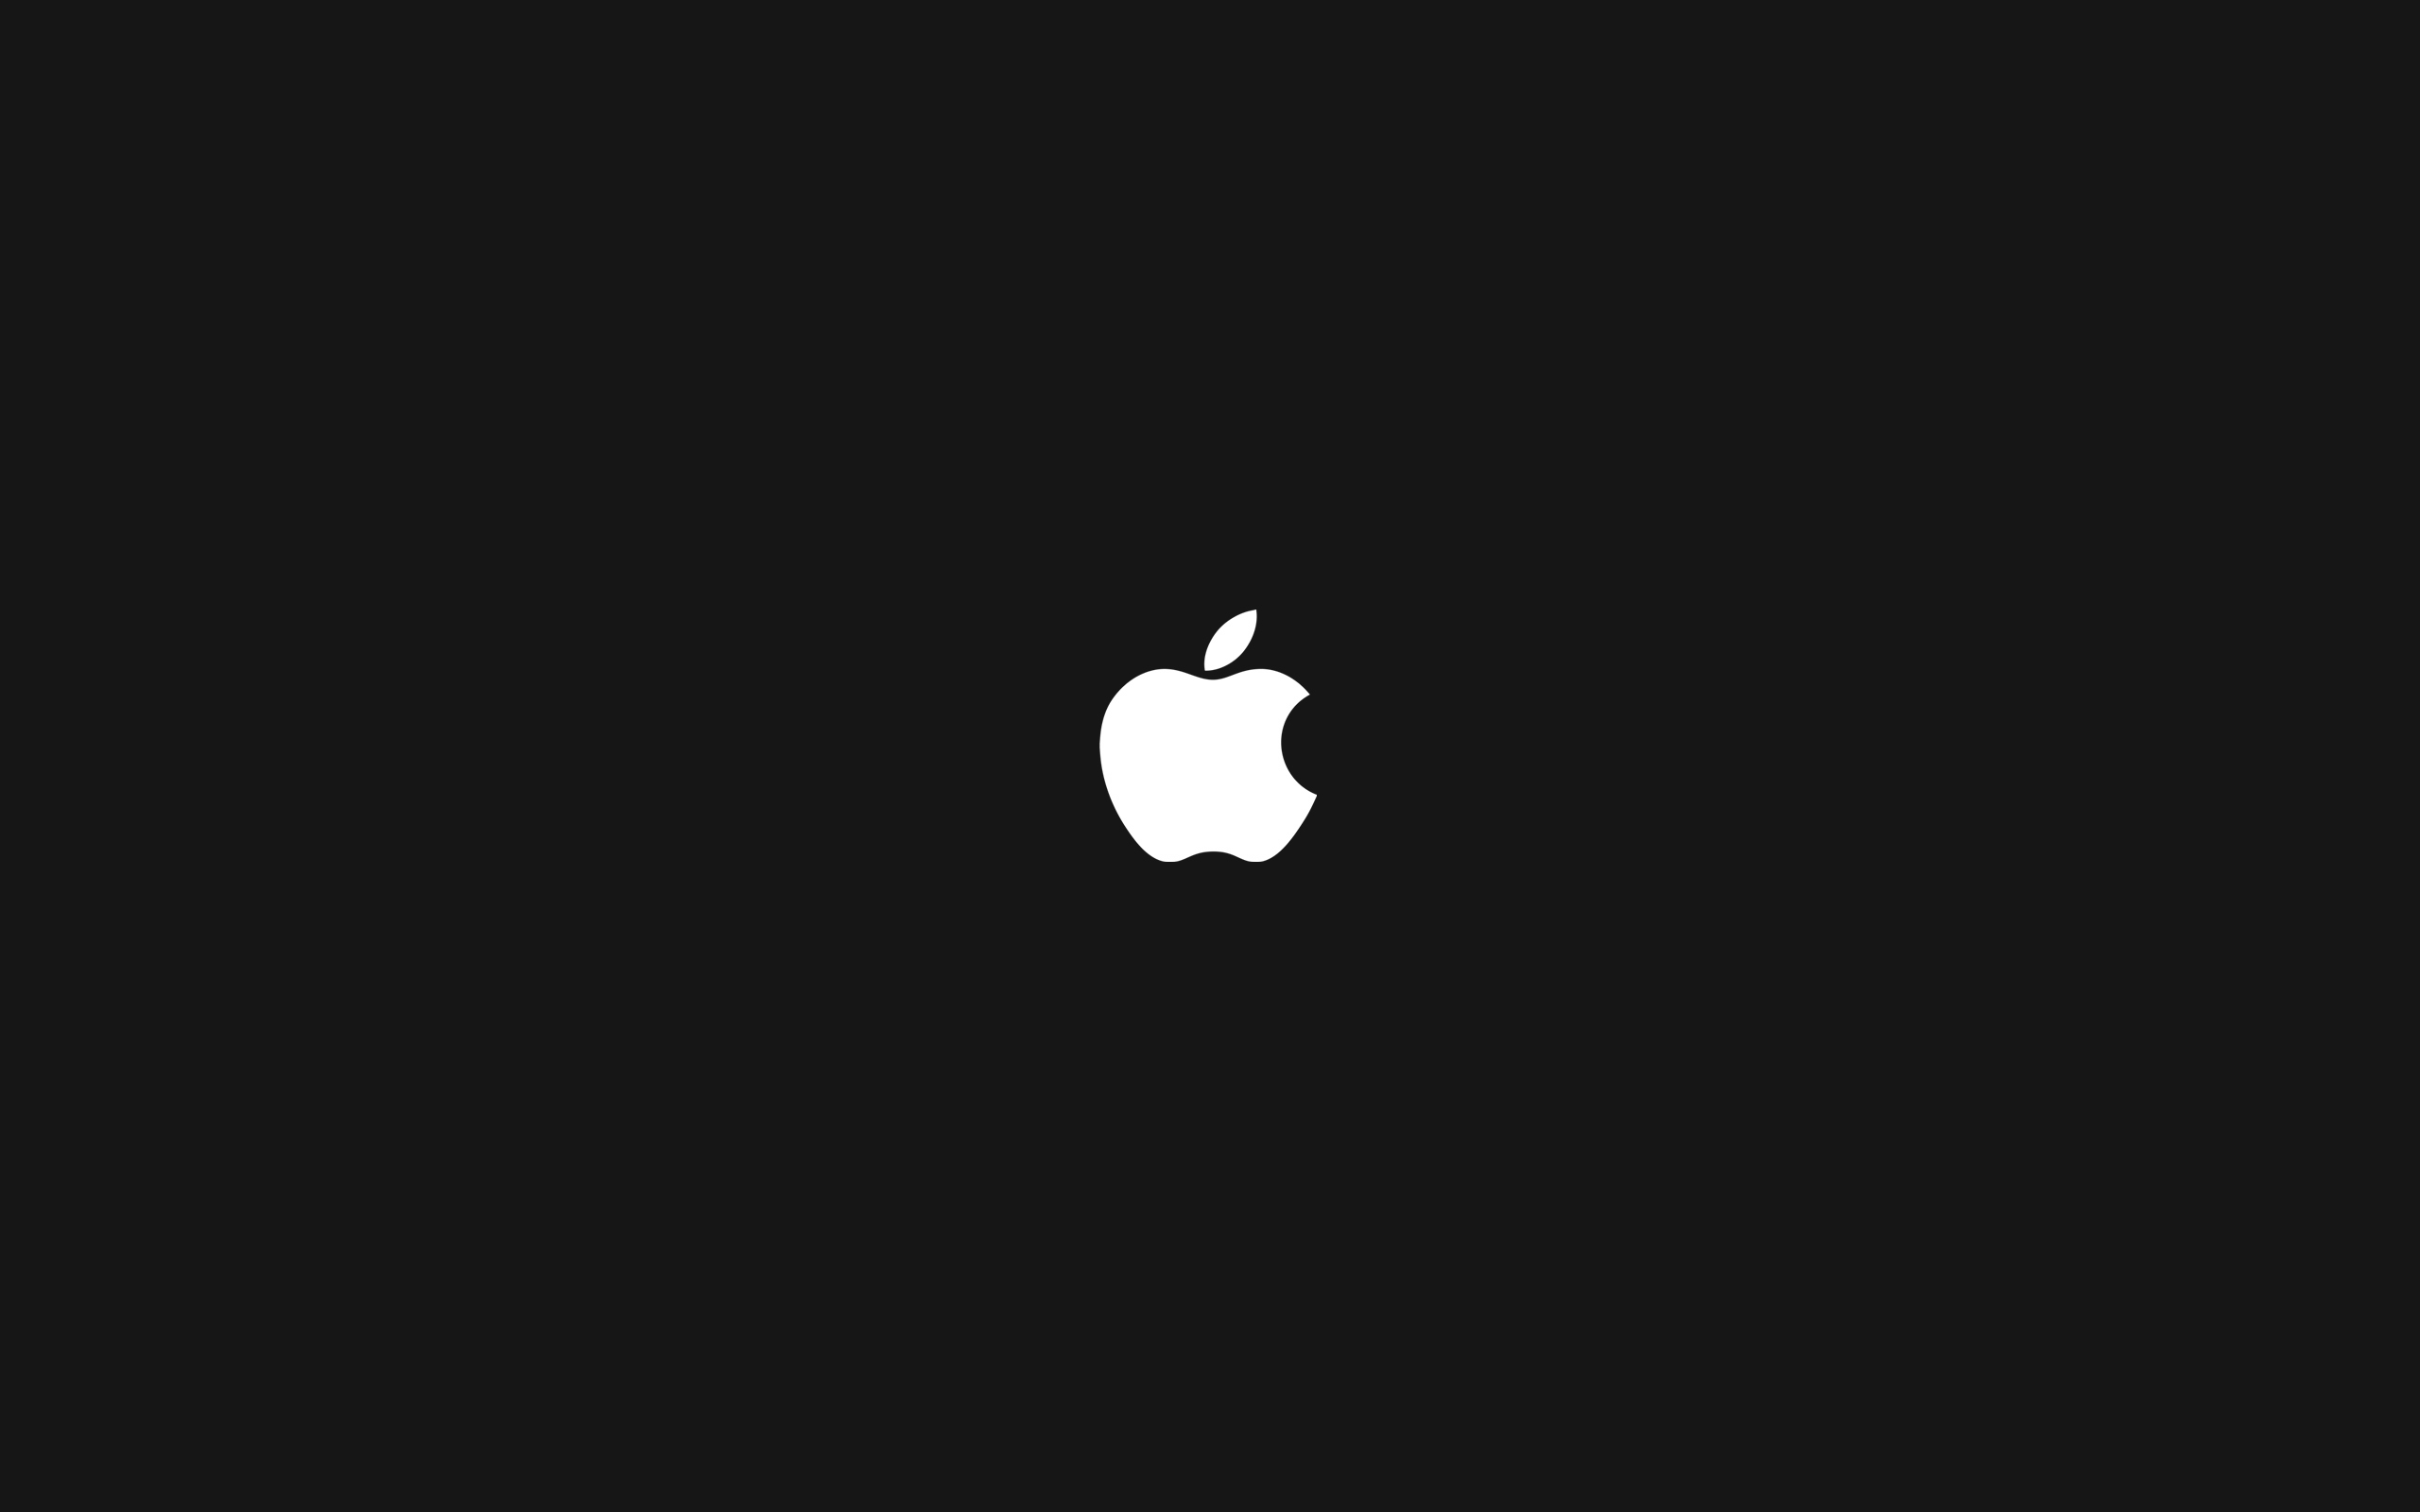 Apple Black and White Wallpapers Apple Black and White Wallpapers 2560x1600